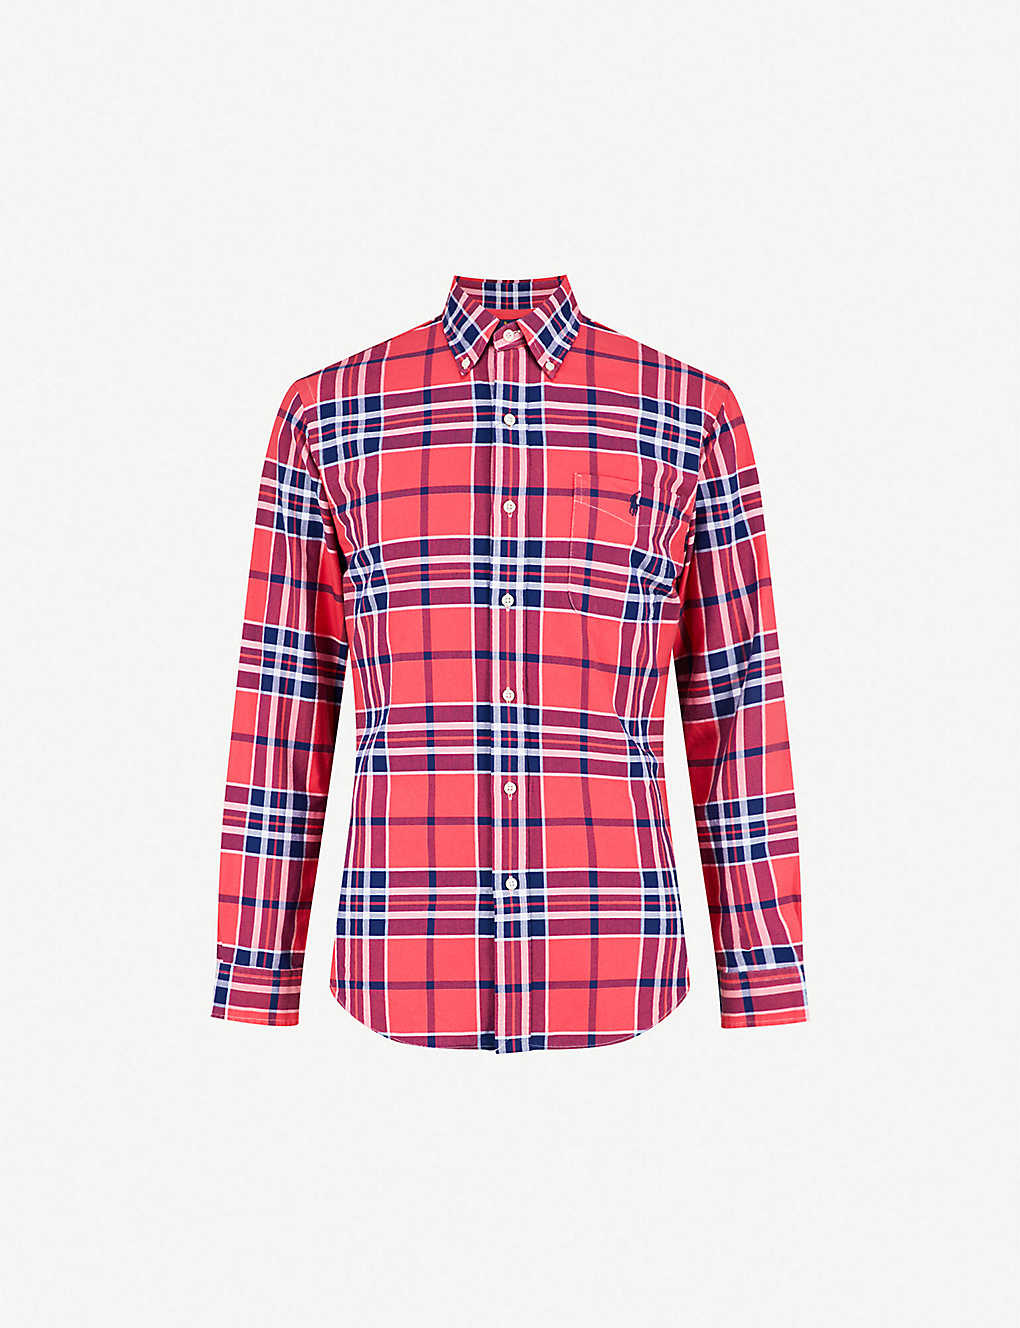 2ee175f58 POLO RALPH LAUREN - Checked slim-fit cotton Oxford shirt ...